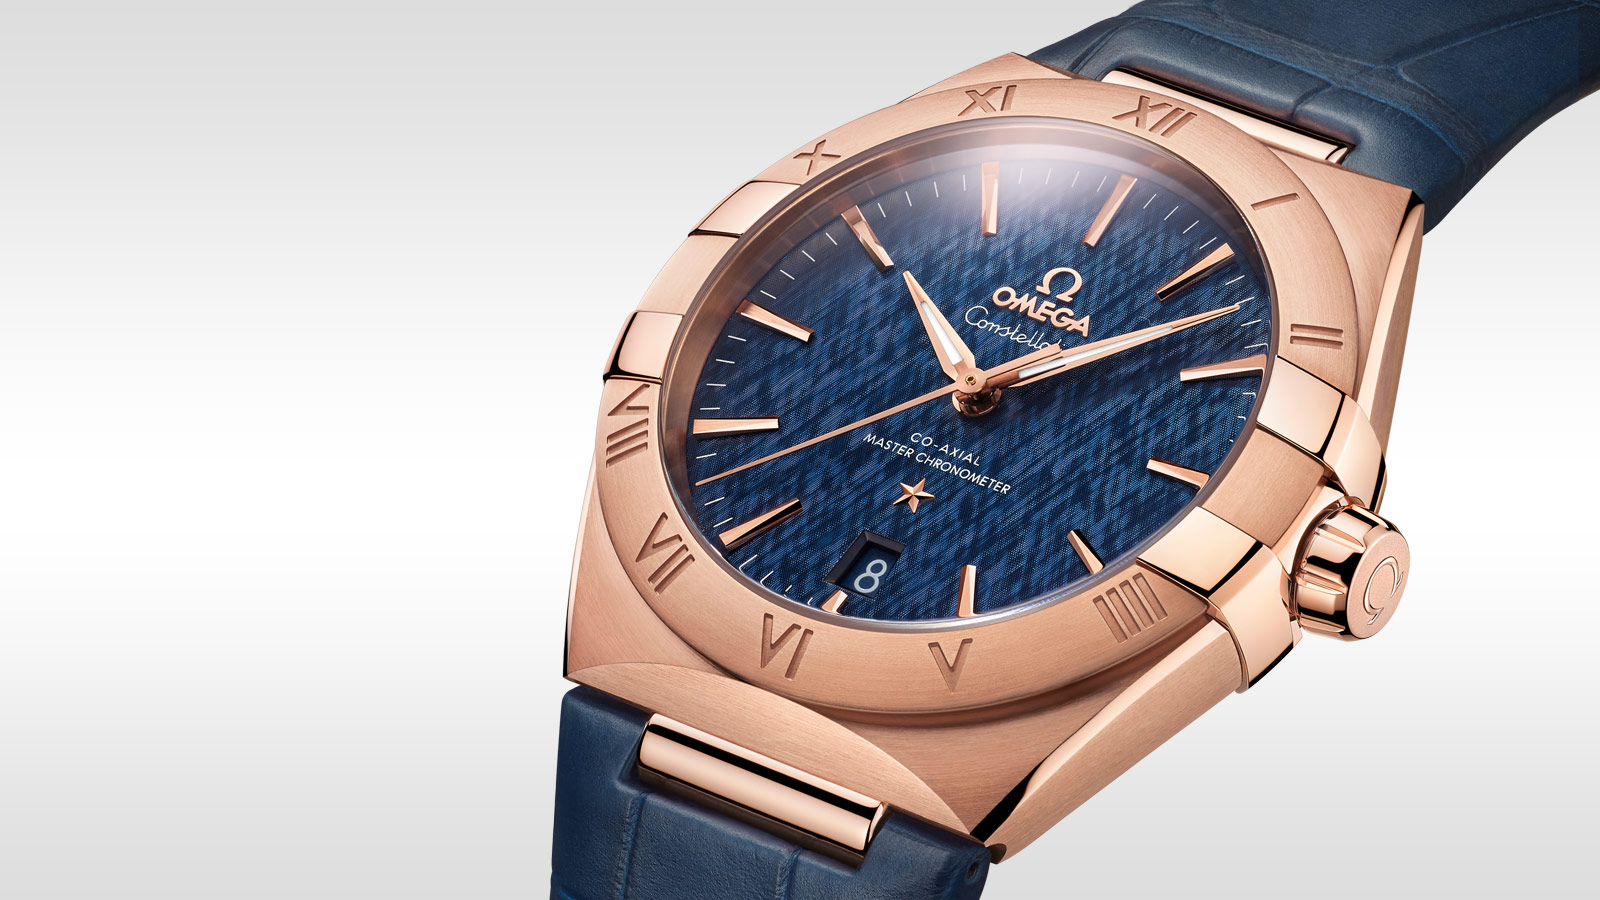 Constellation Constellation Constellation OMEGA Co‑Axial Master Chronometer 39 mm - 131.53.39.20.03.001 - View 3